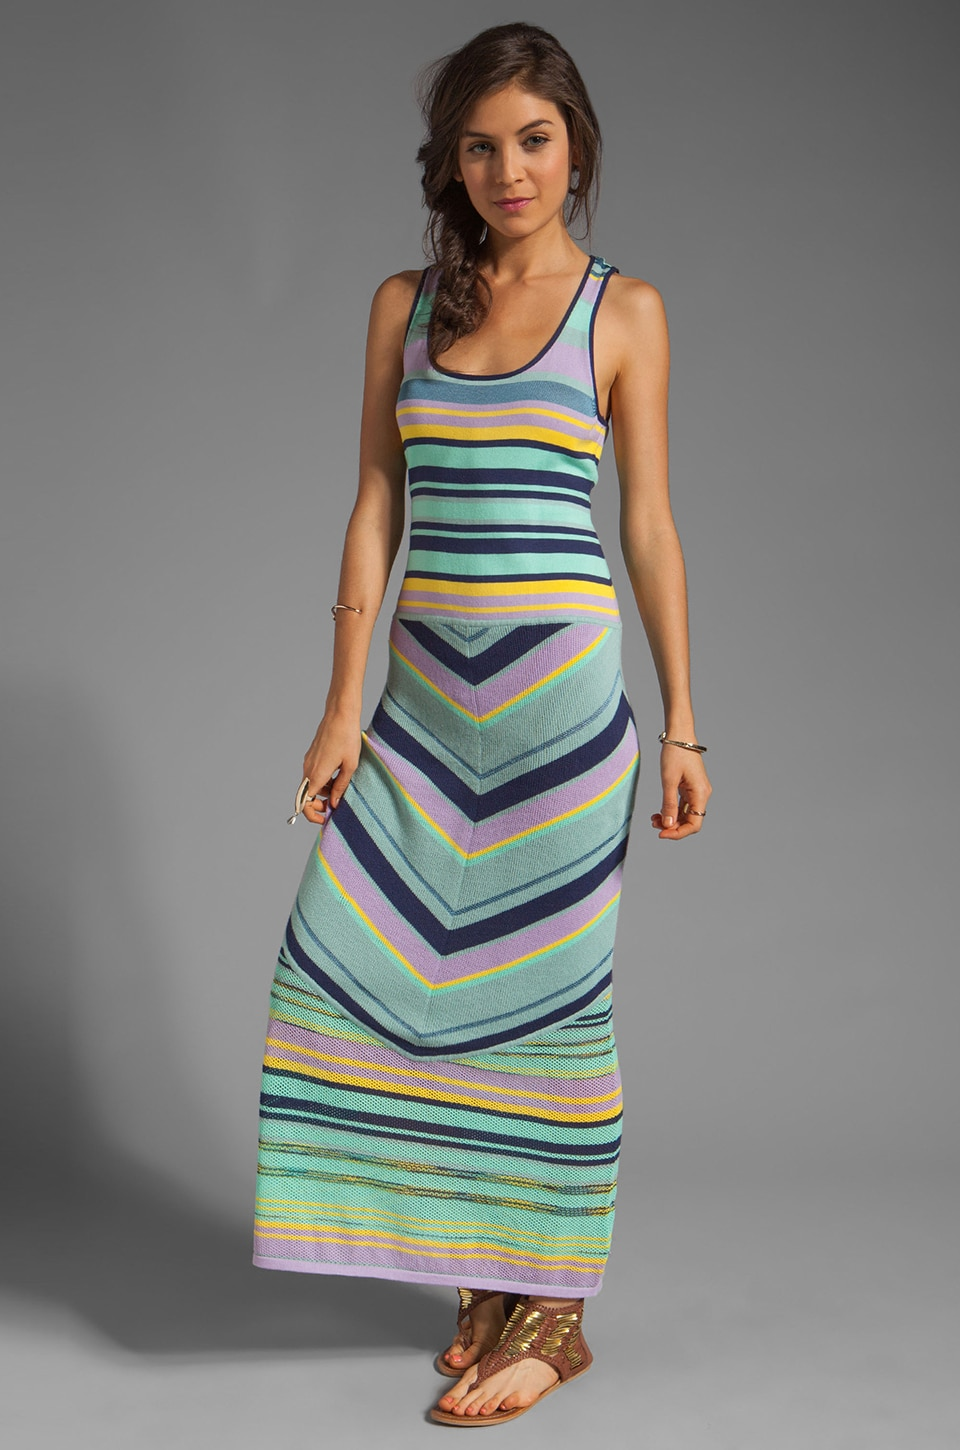 Nanette Lepore Issos Dress in Indigo Multi